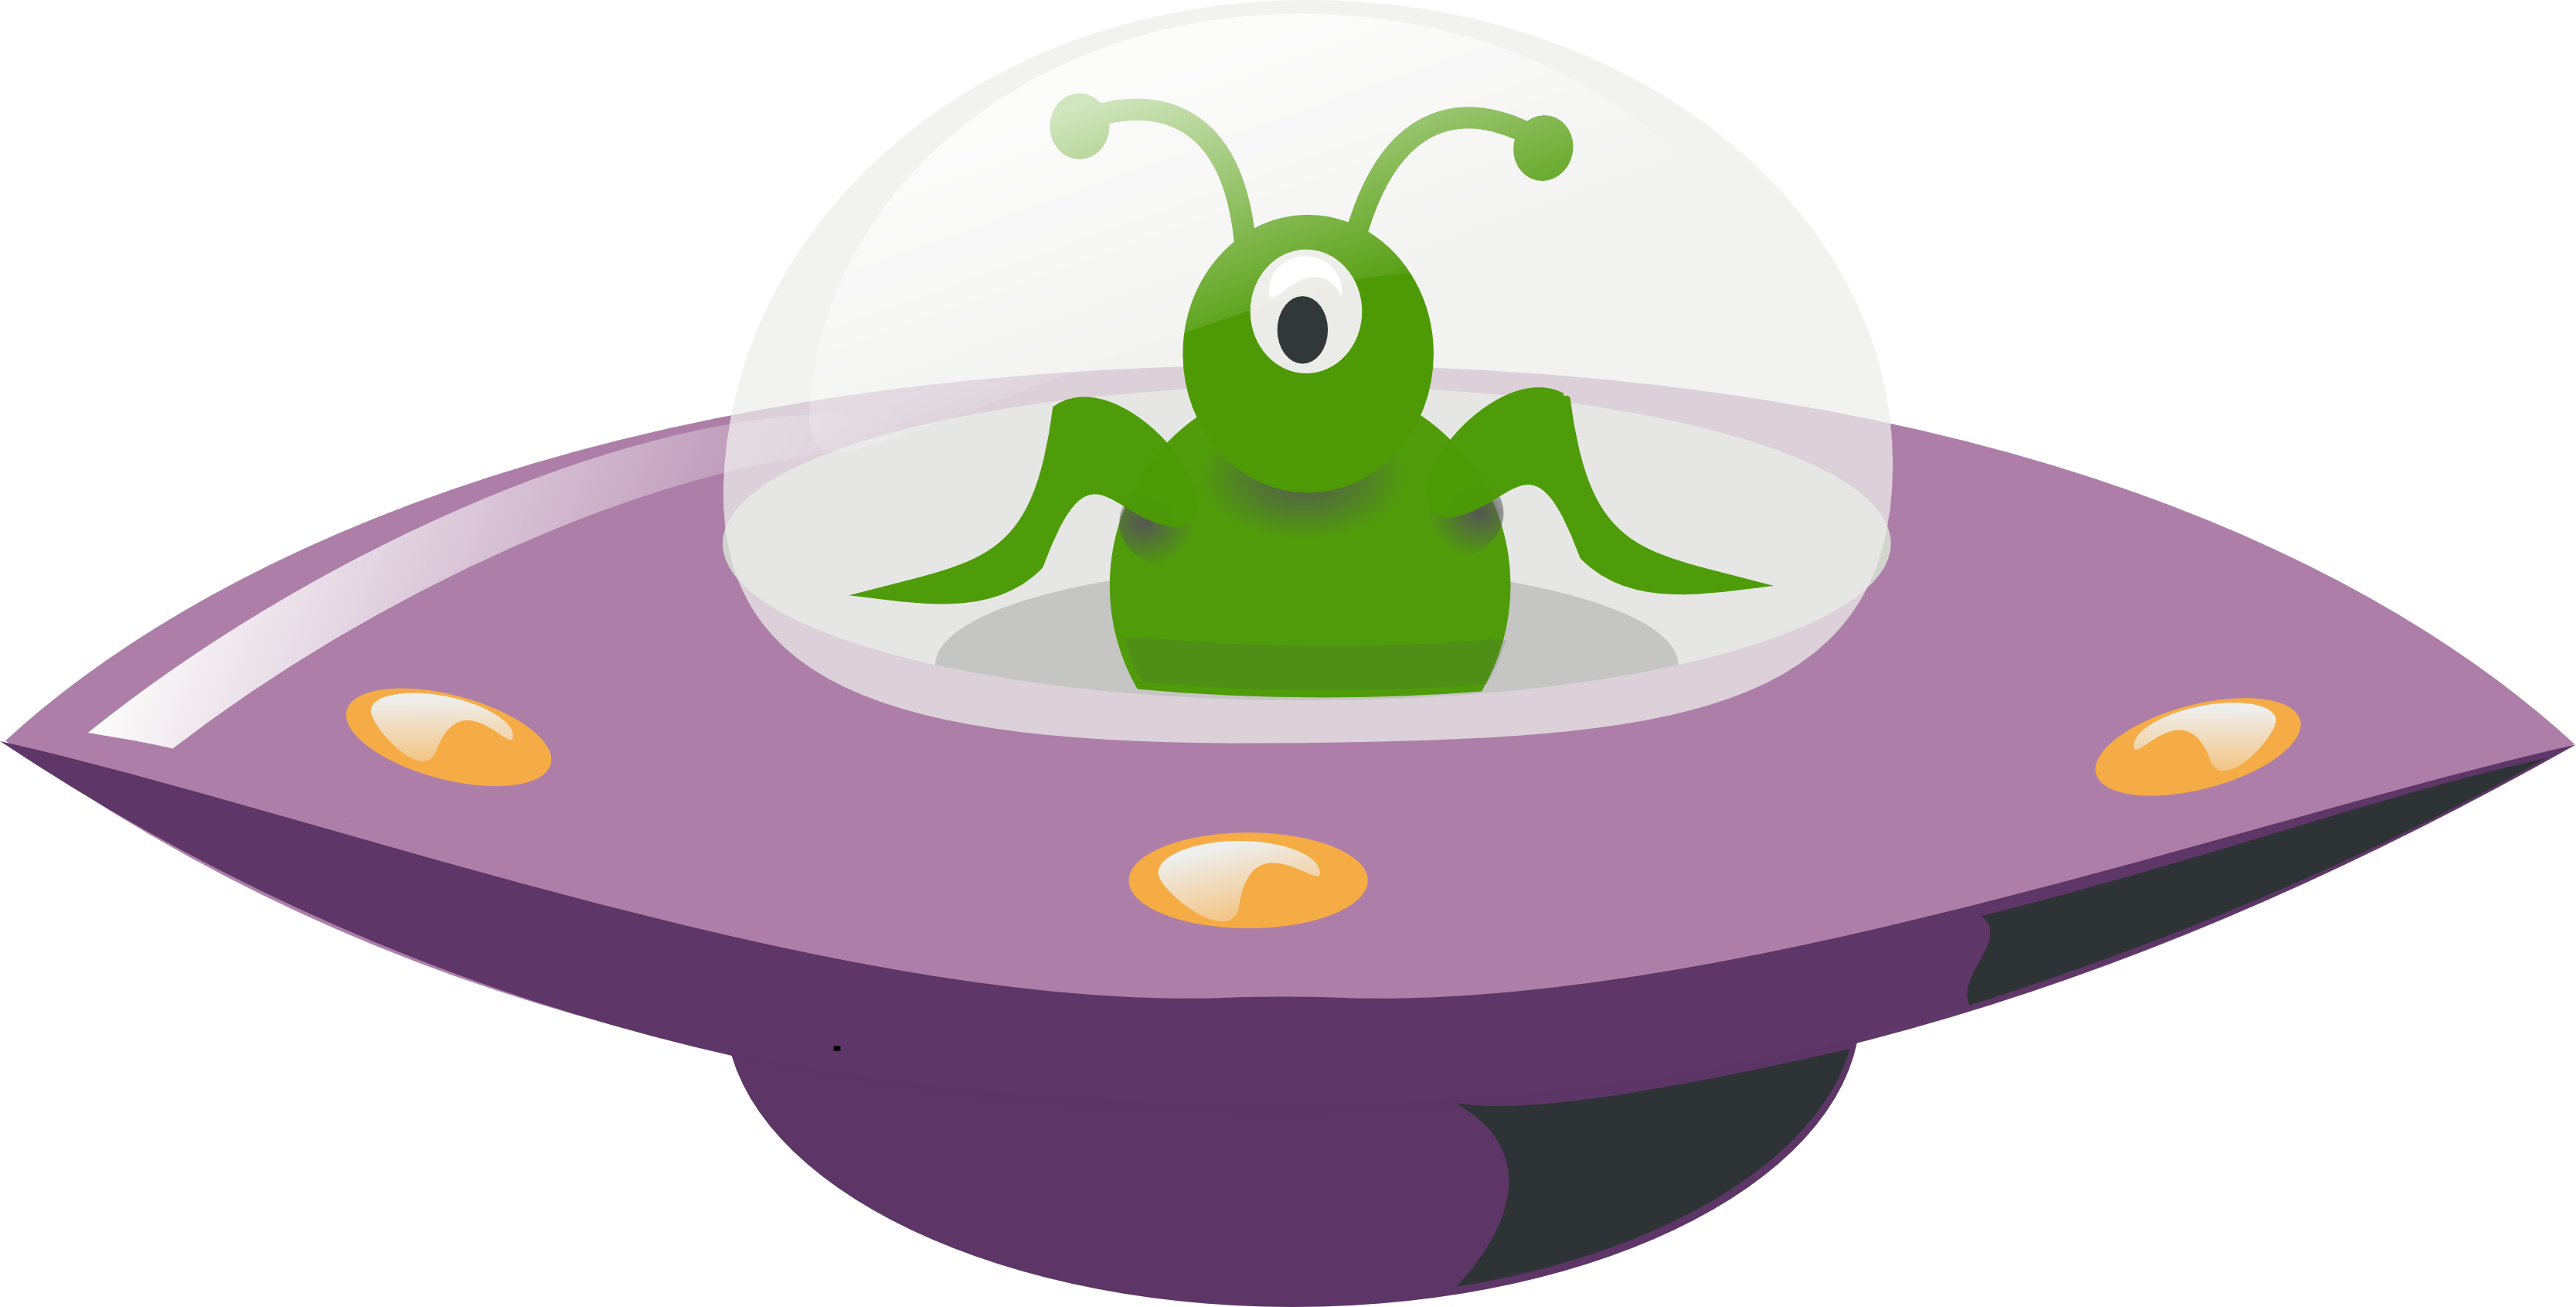 Ufo 20clipart | Clipart Panda - Free Clipart Images